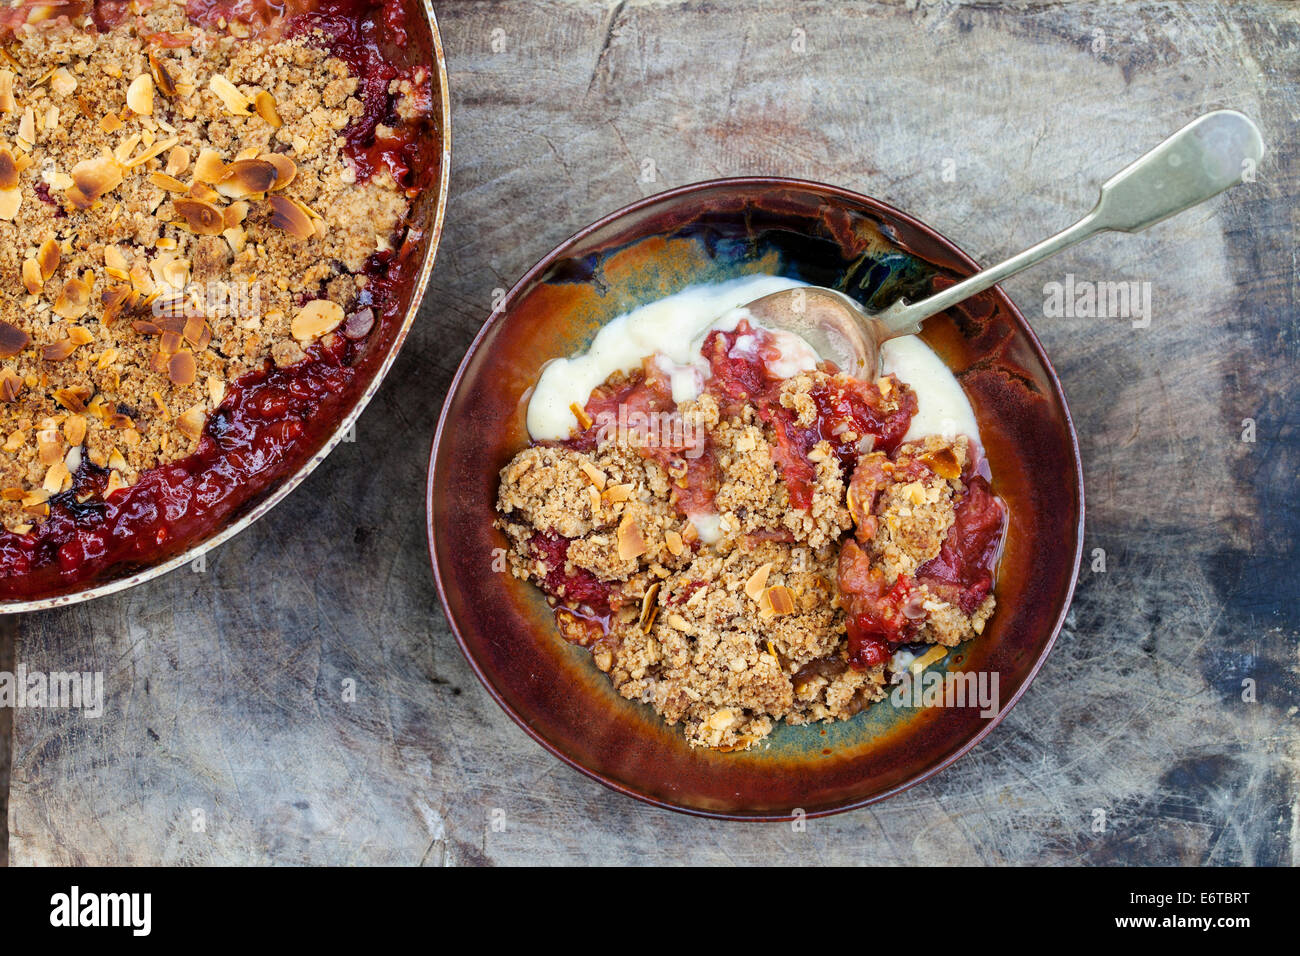 Rhubarb and strawberry crumble - Stock Image